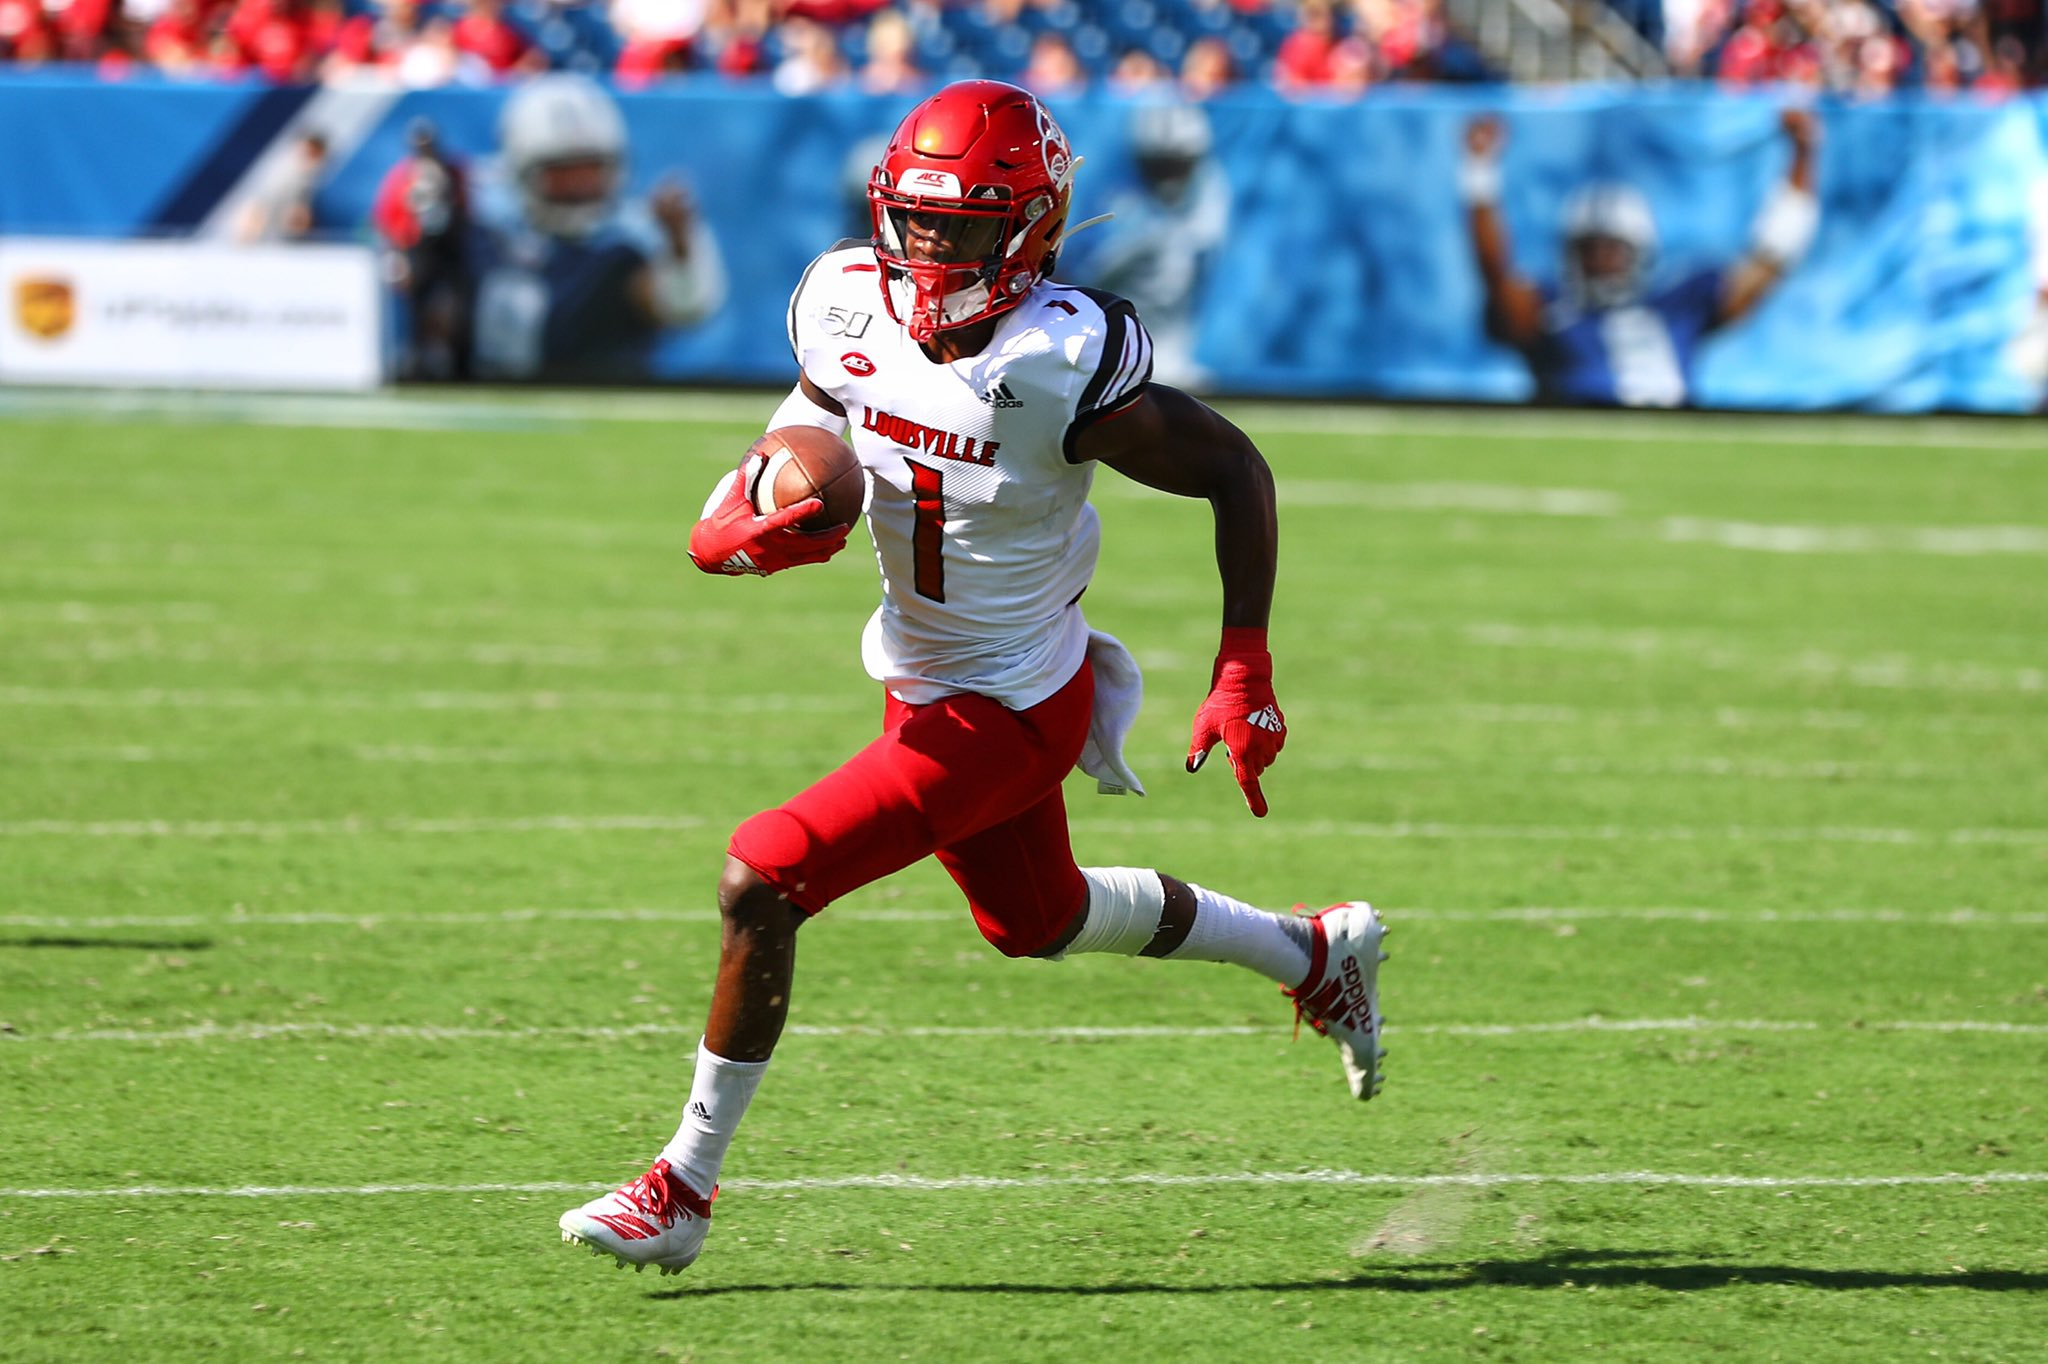 PREVIEW: Louisville vs. Florida State